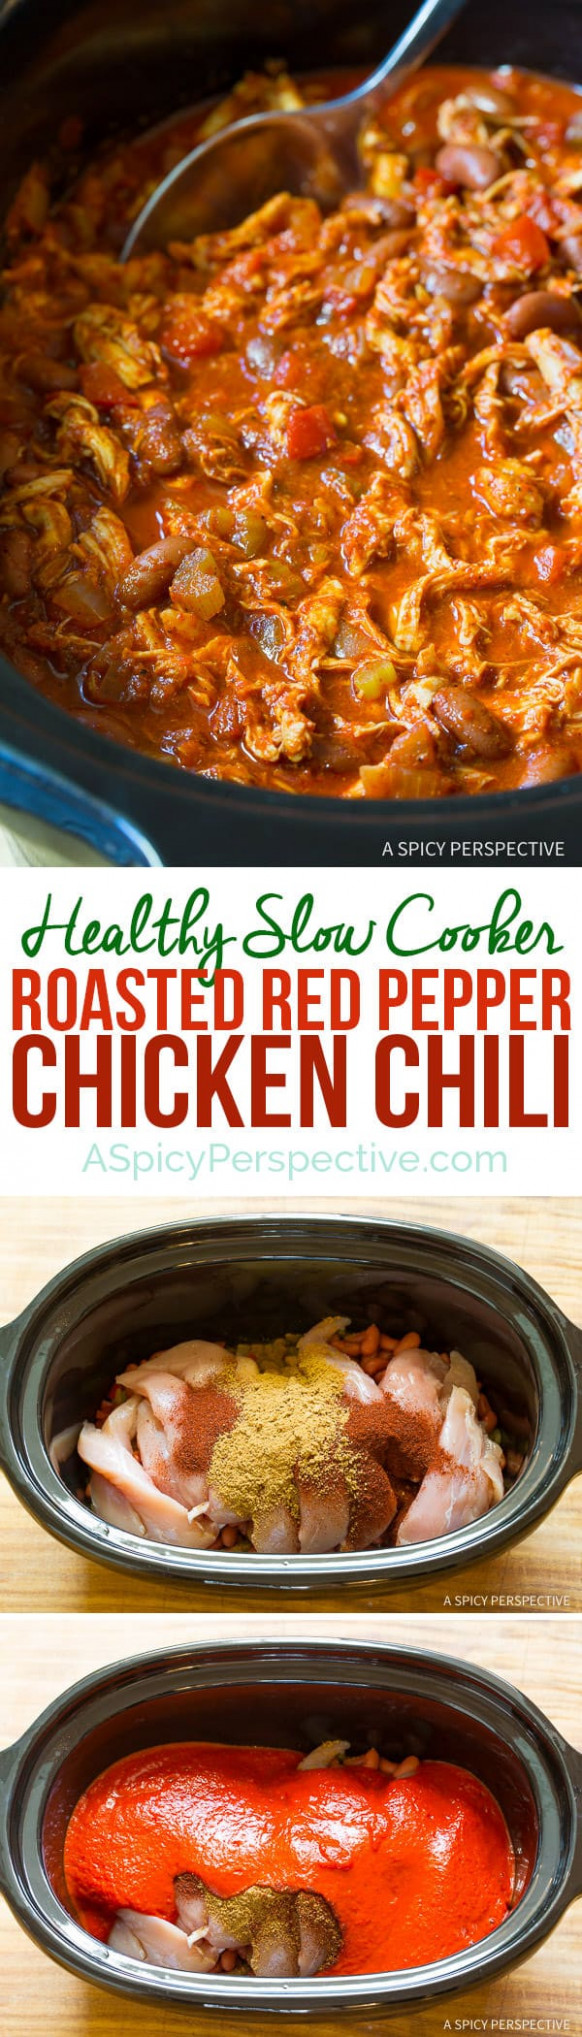 Roasted Red Pepper Chicken Chili Recipe - healthy slow cooker recipes chicken